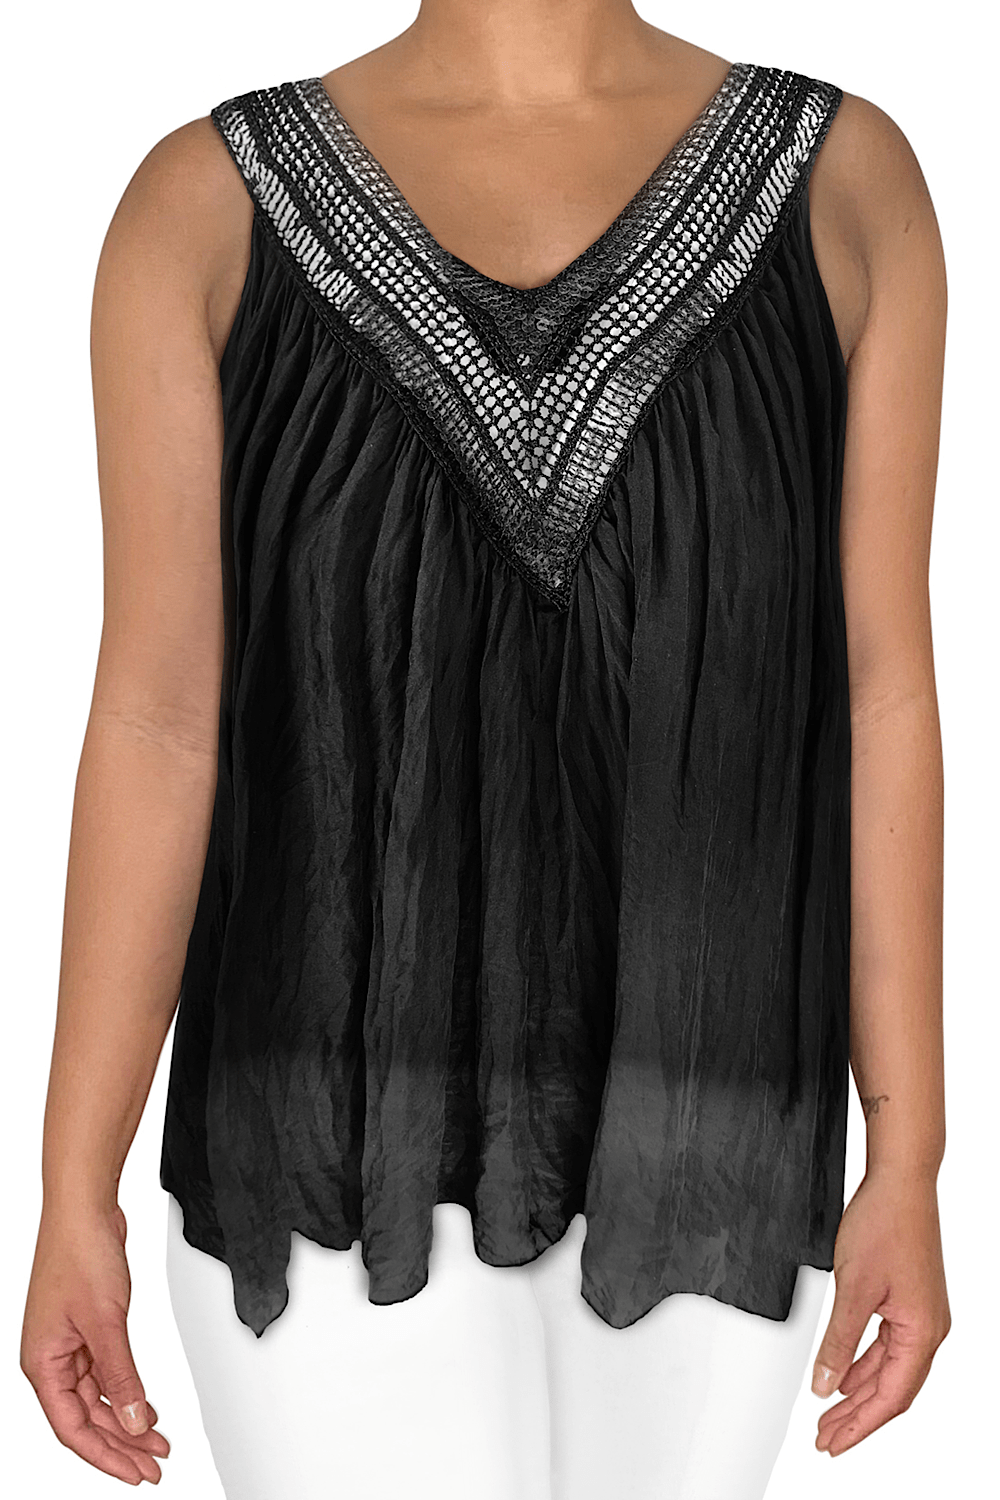 Ginger Threads Collections top Crochet Sequin V-Neck Tank